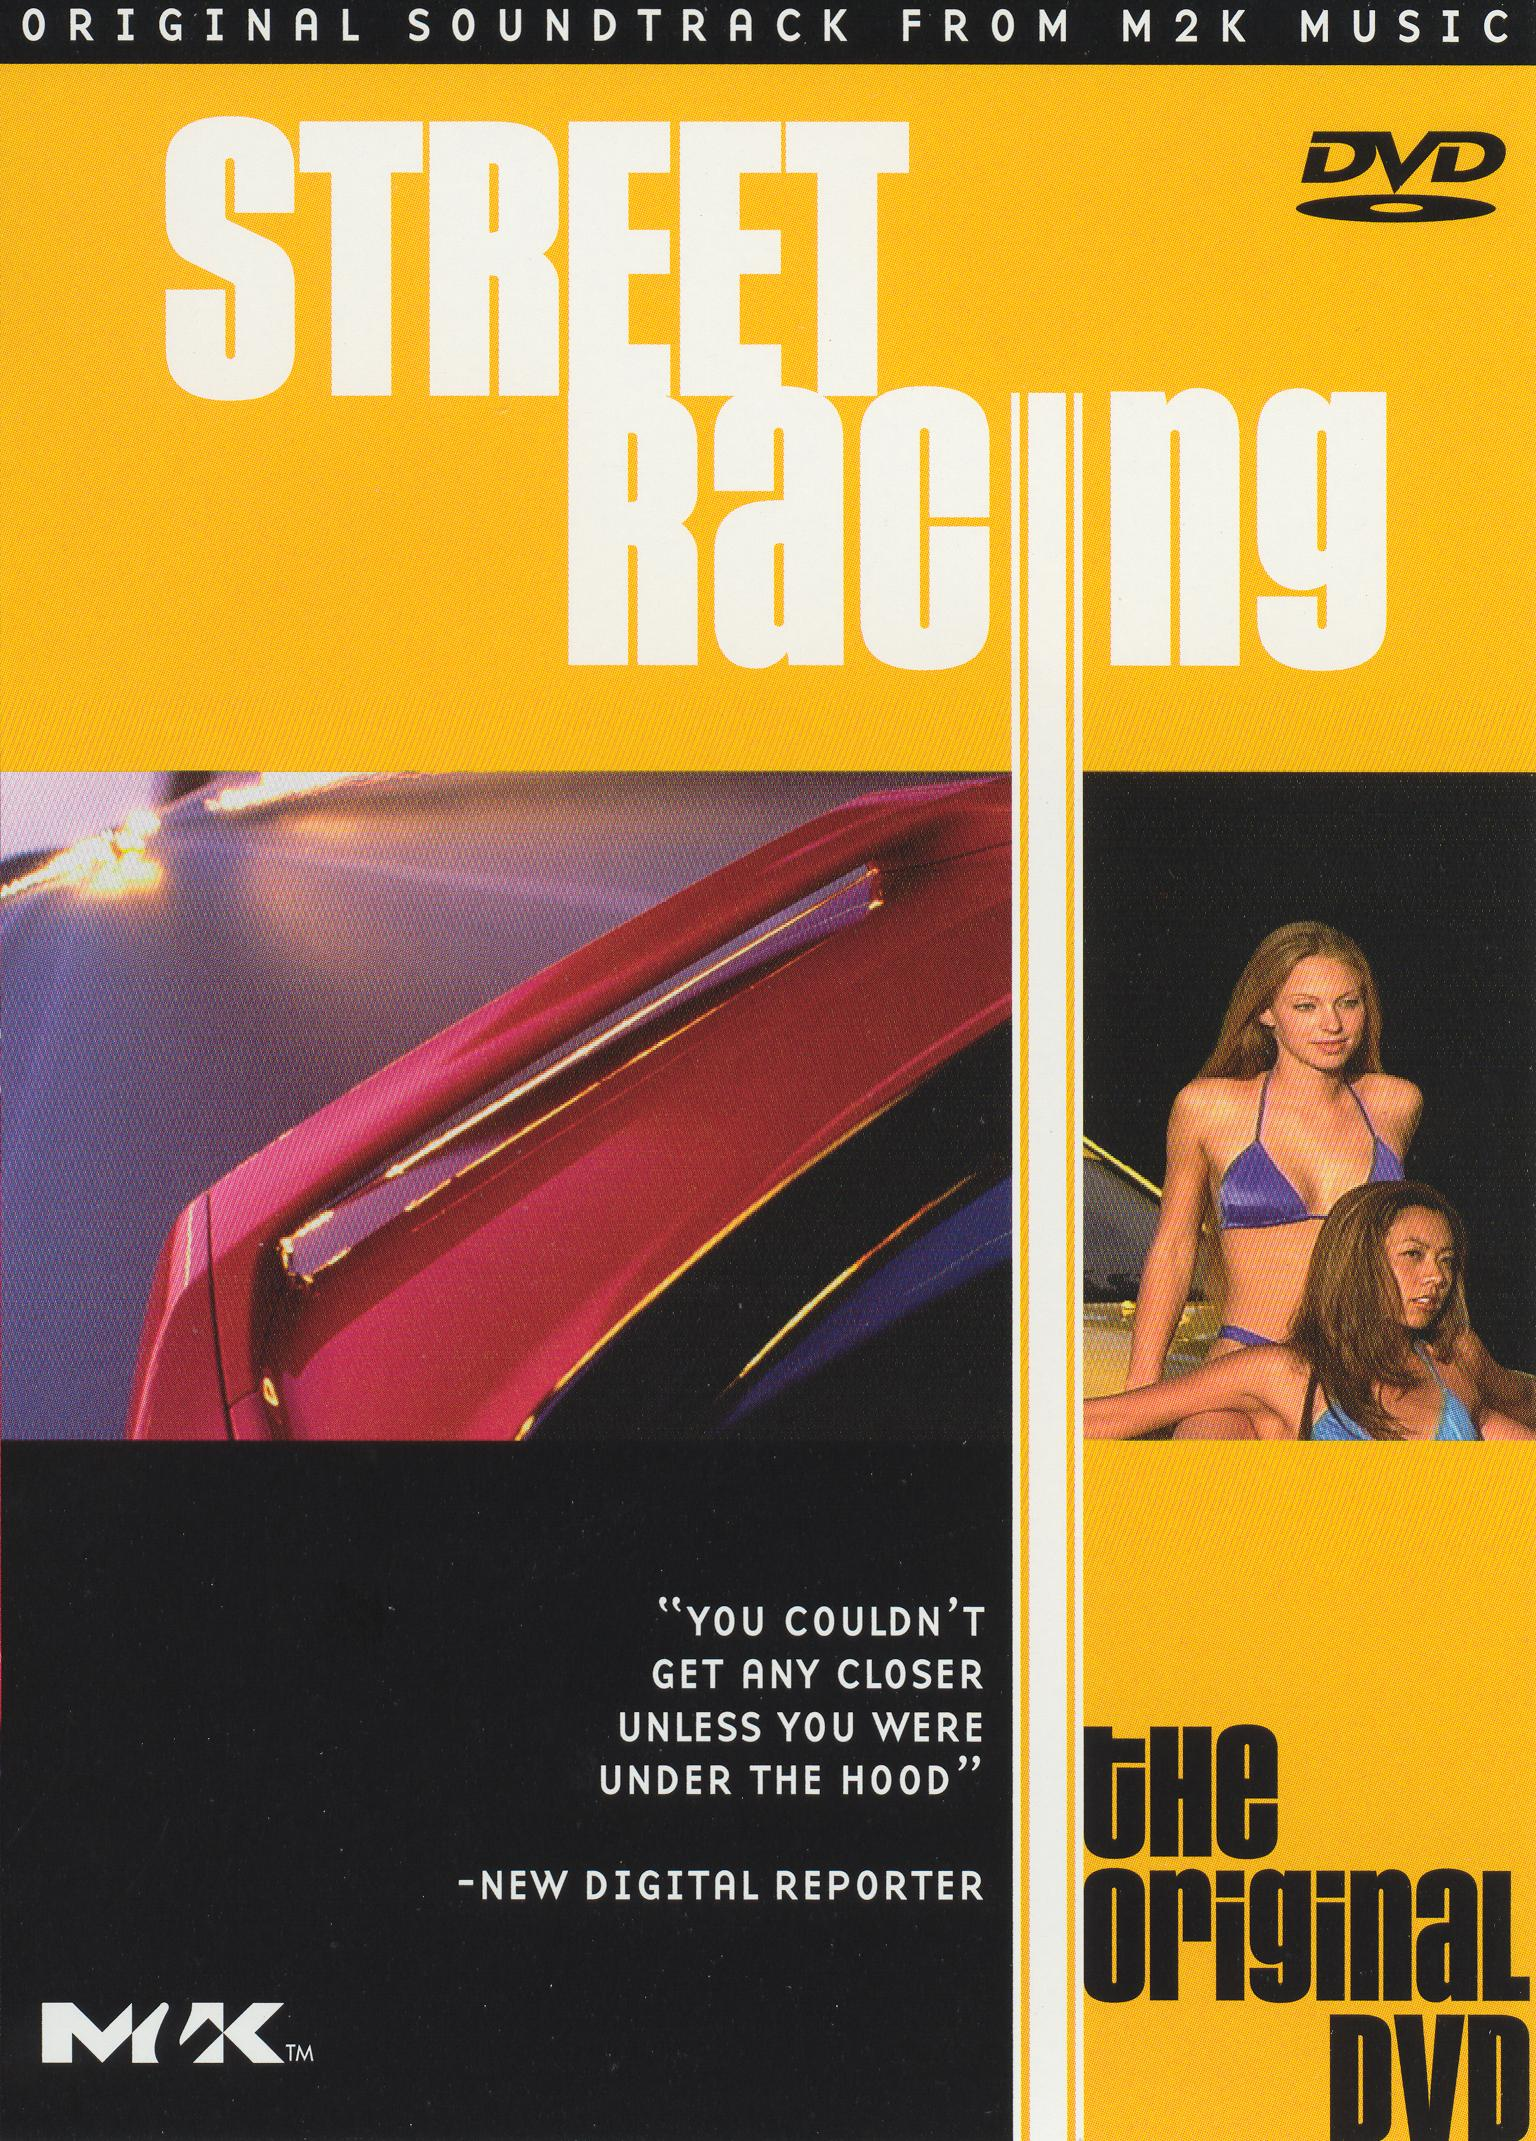 Street Racing, Vol. 1: The Original